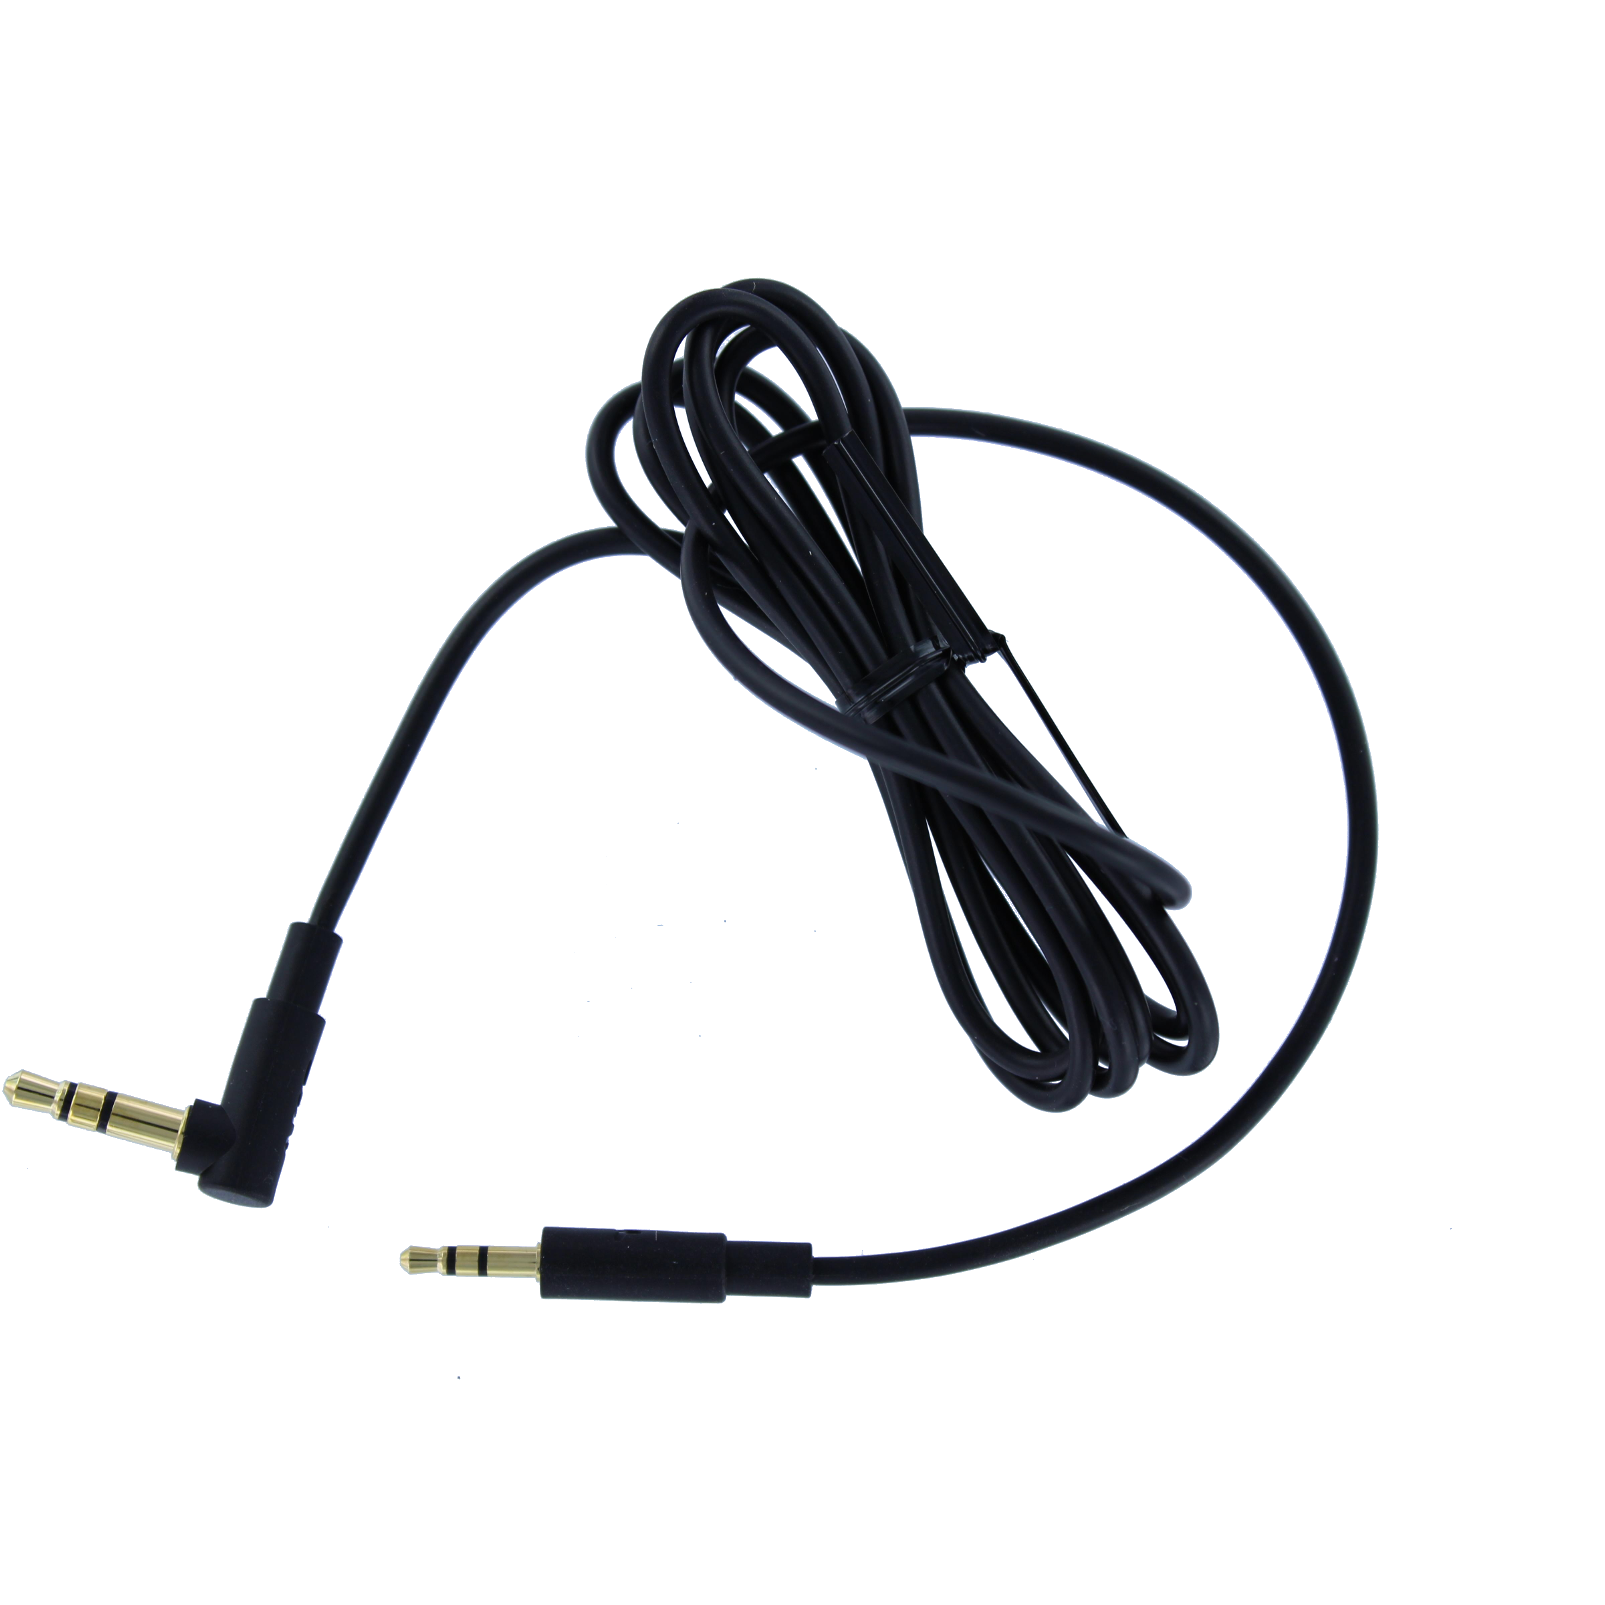 Cable without remote, 130cm, N60